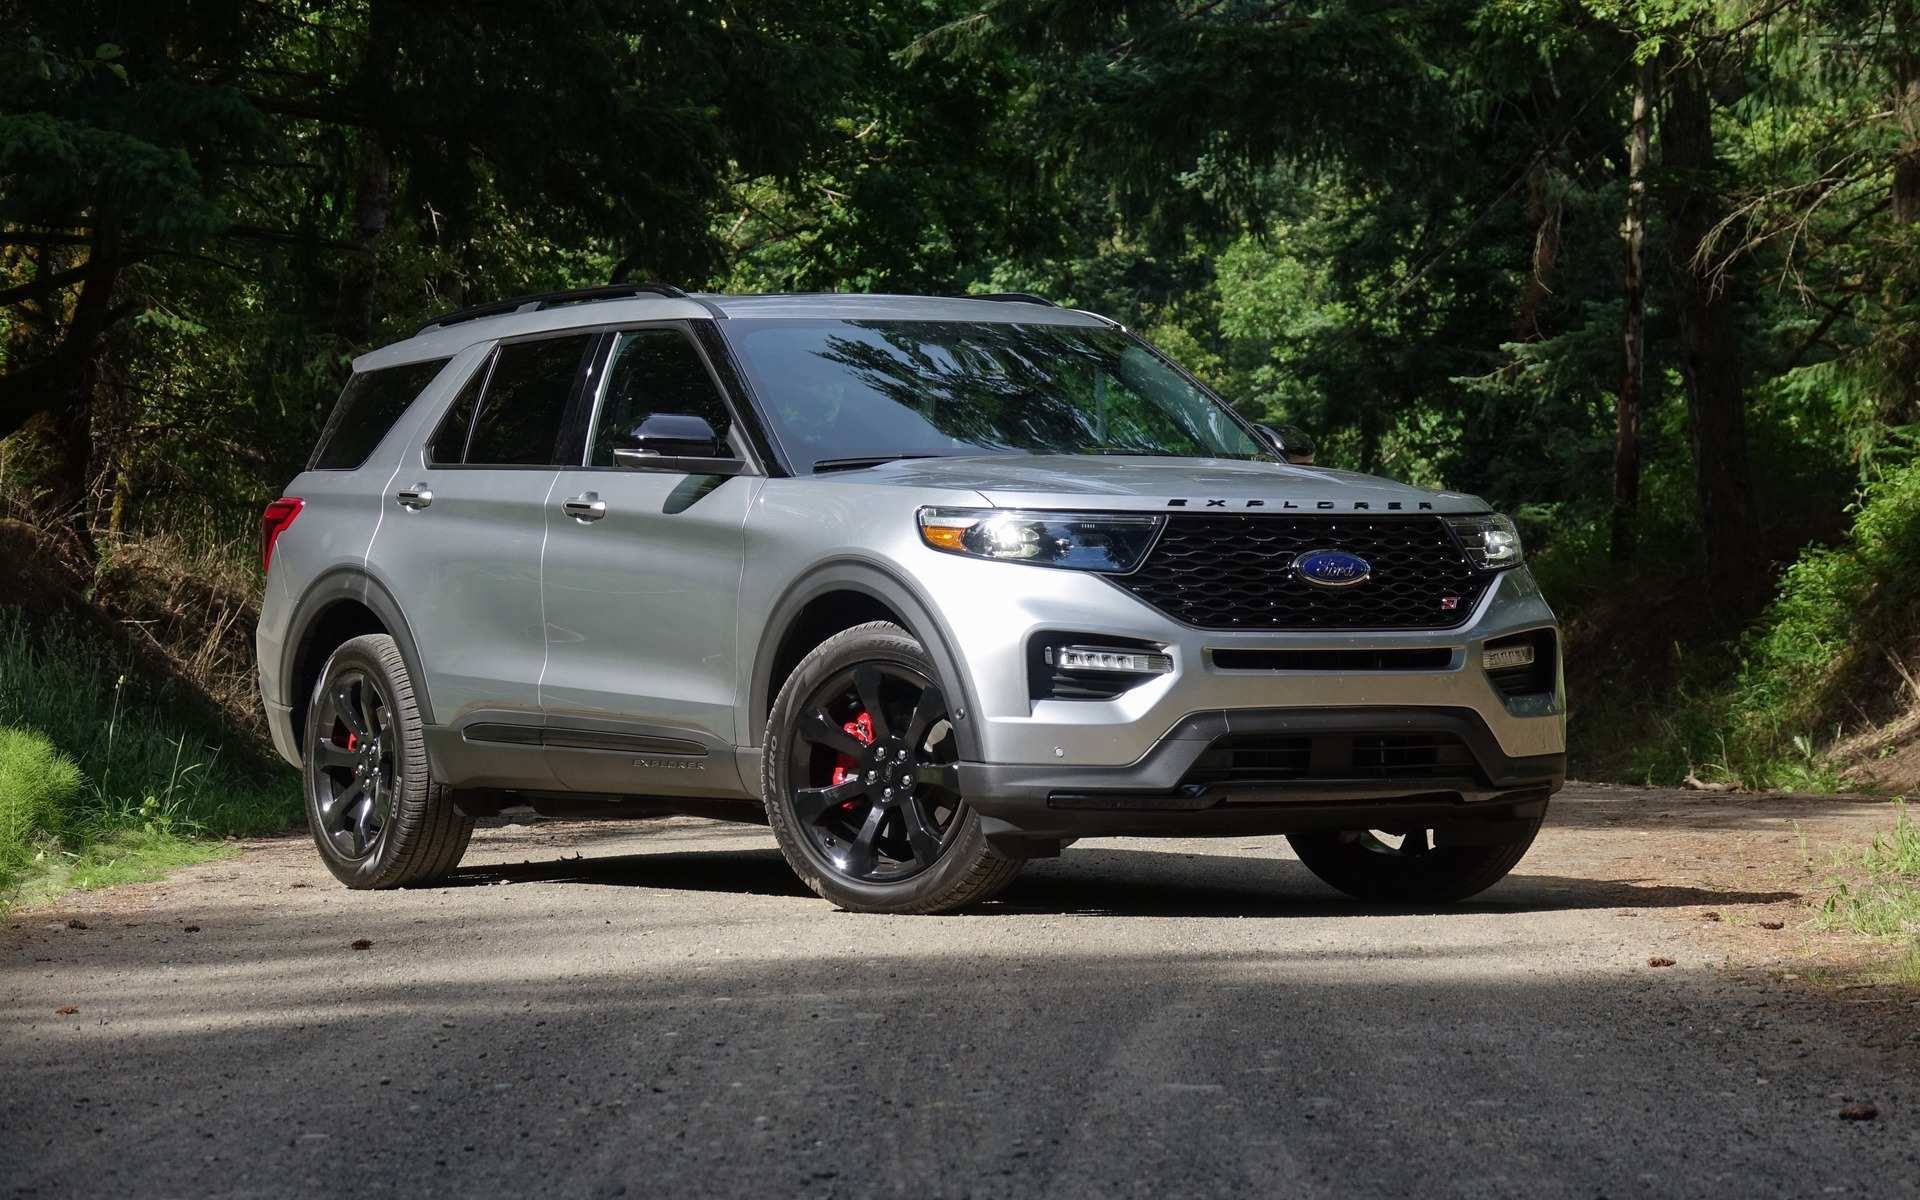 57 All New 2020 Ford Explorer Availability Redesign And Concept